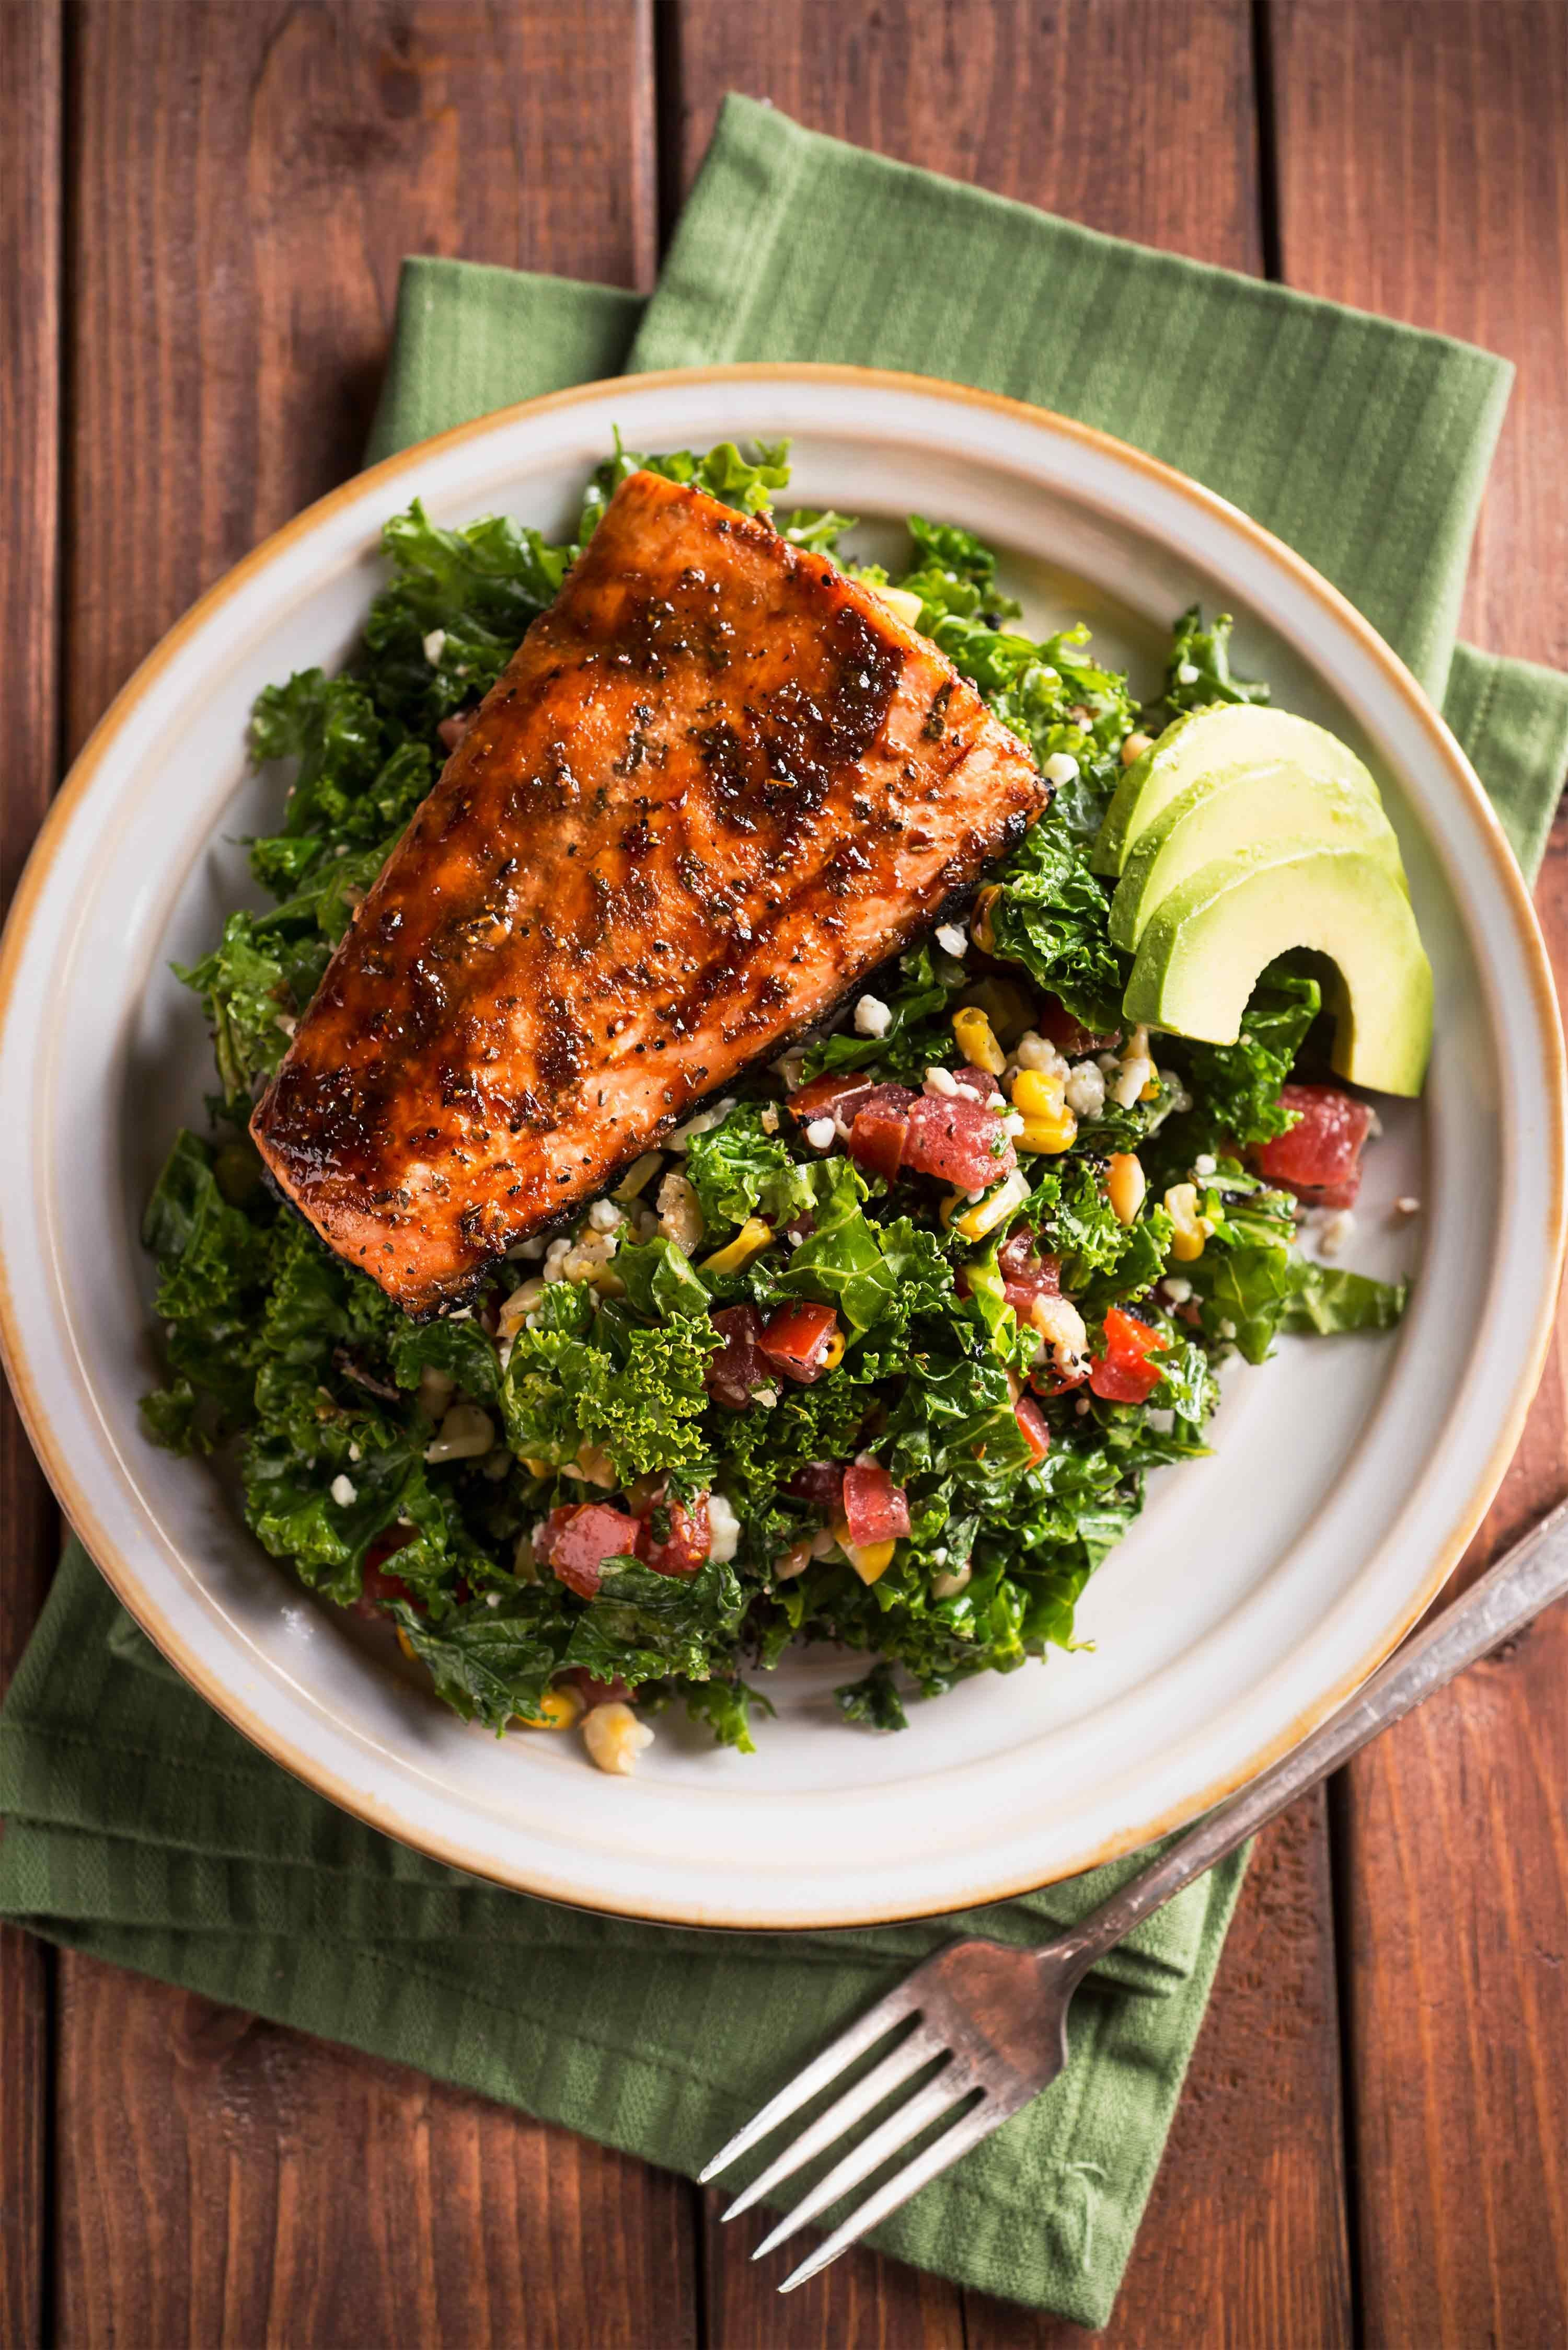 A plate of kale salad topped with grilled salmon.